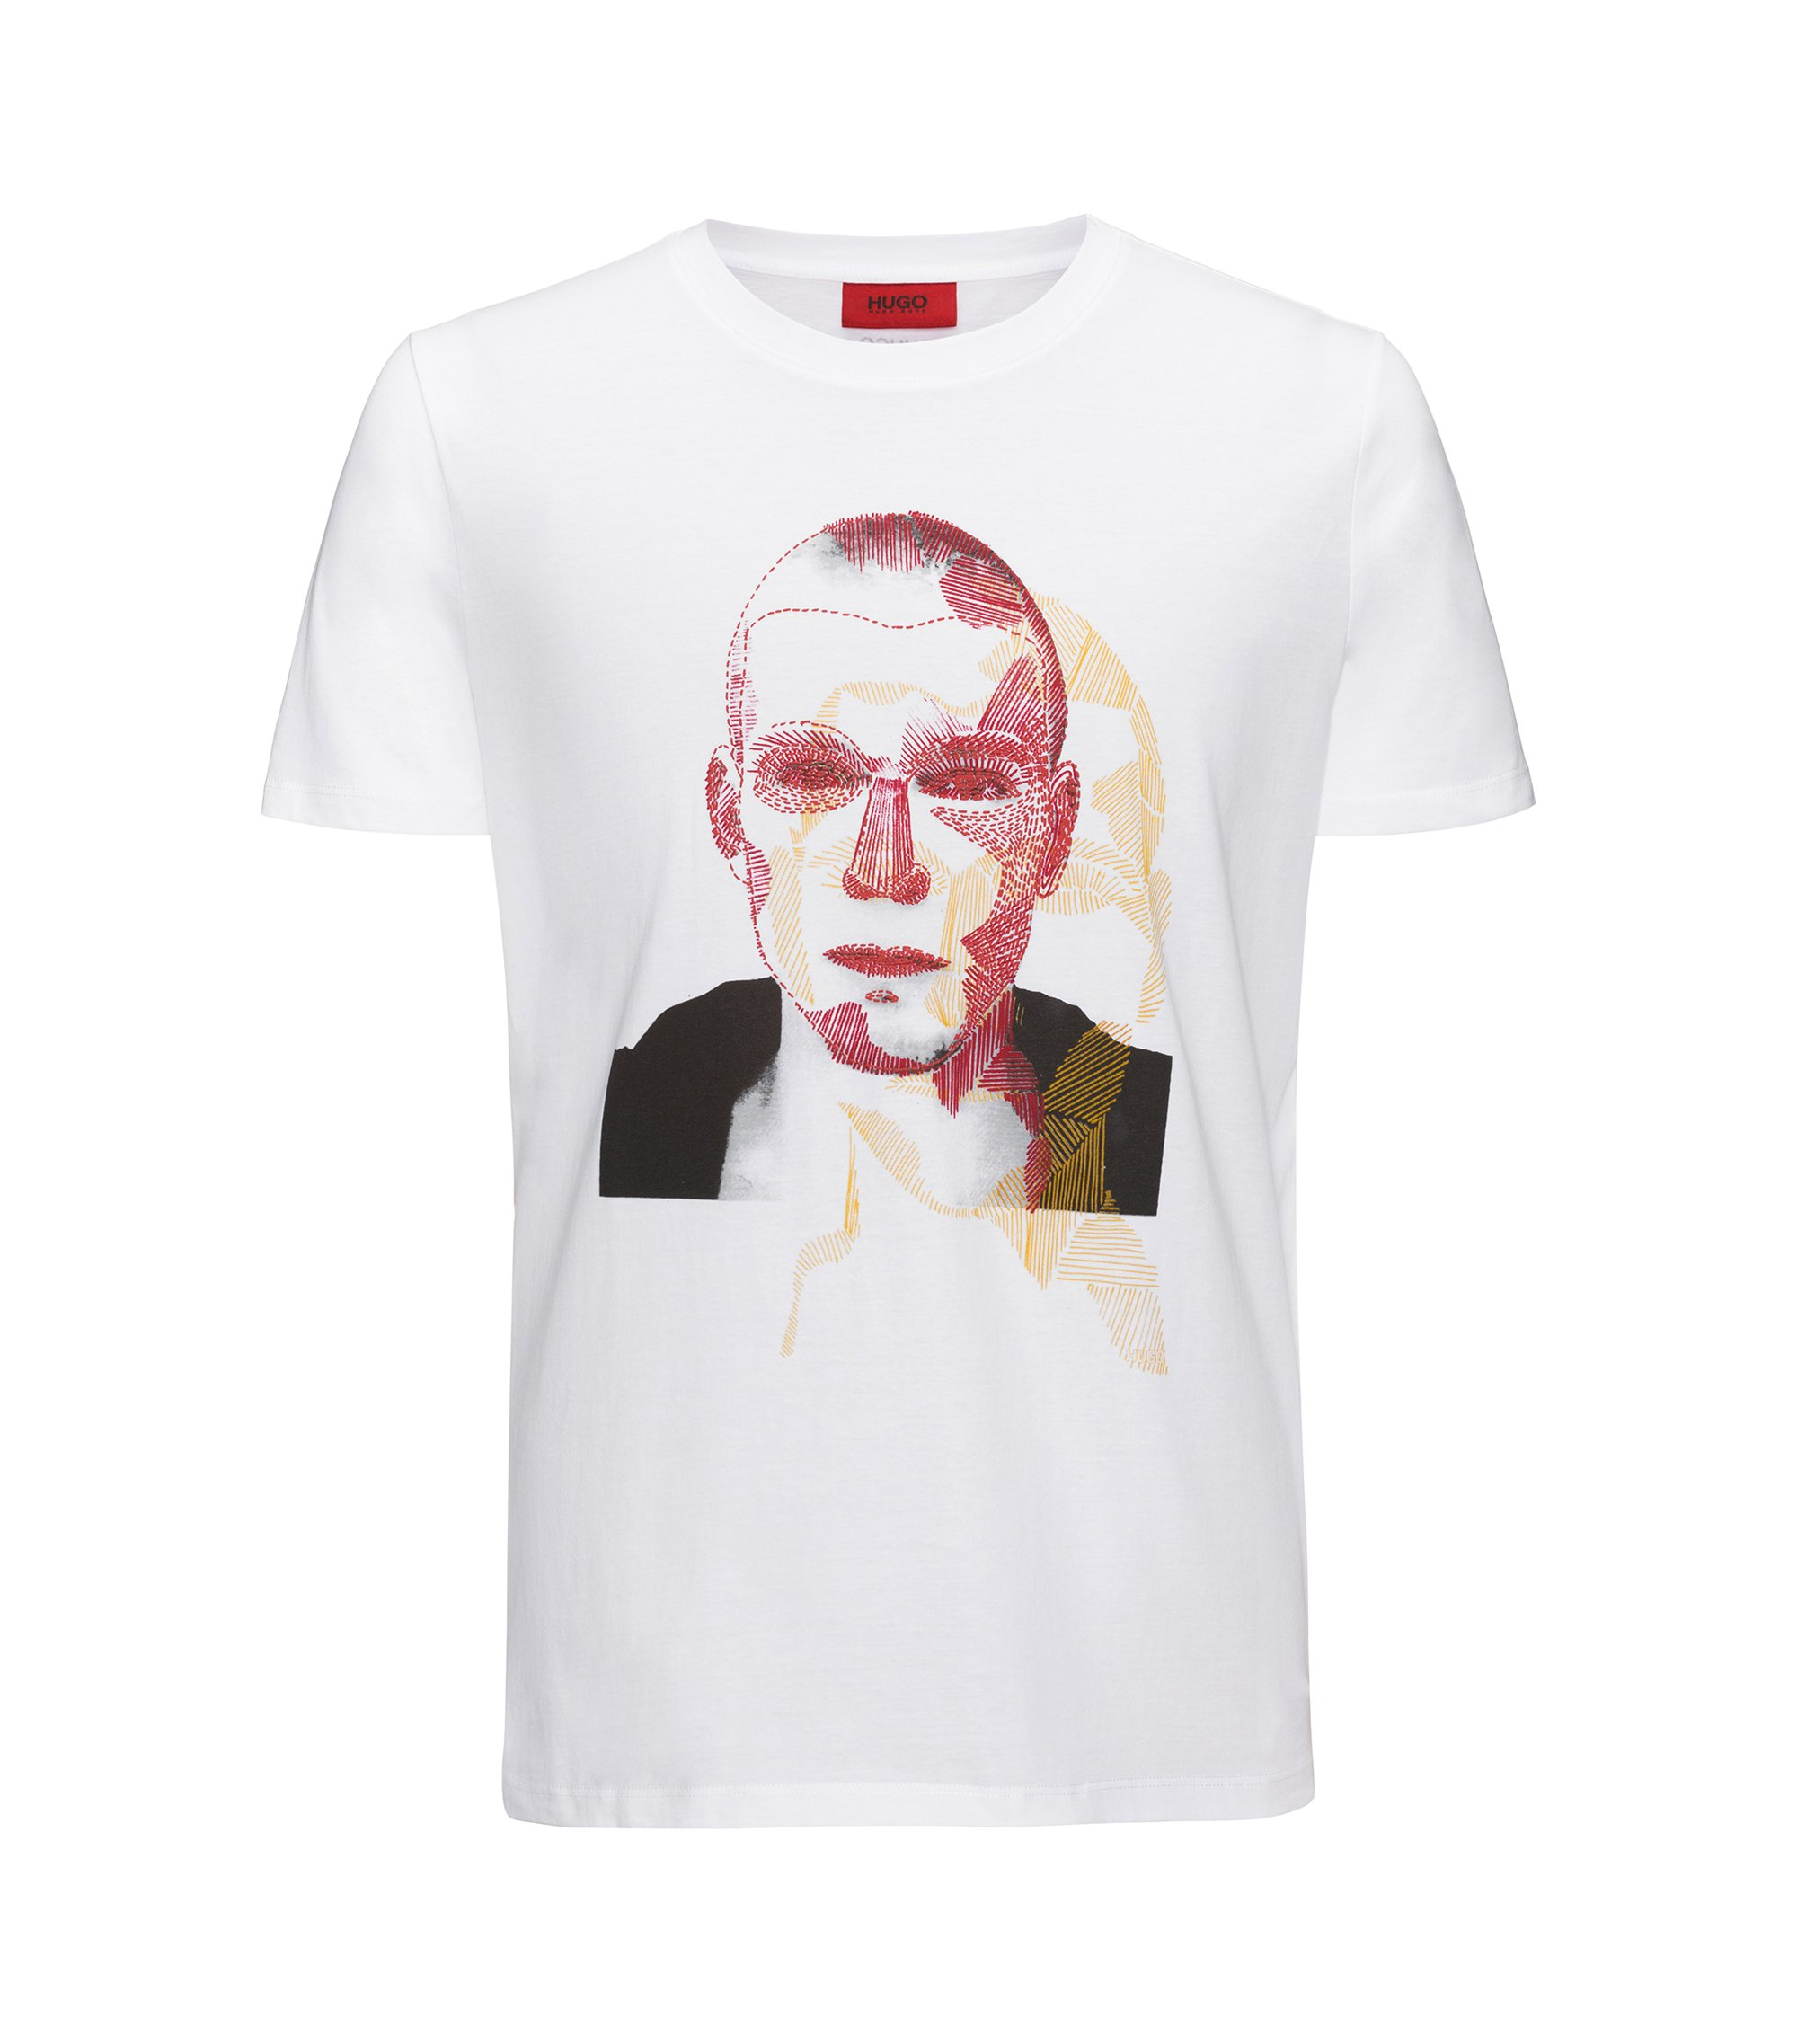 T-shirt Relaxed Fit en coton à motif artistique original, Blanc